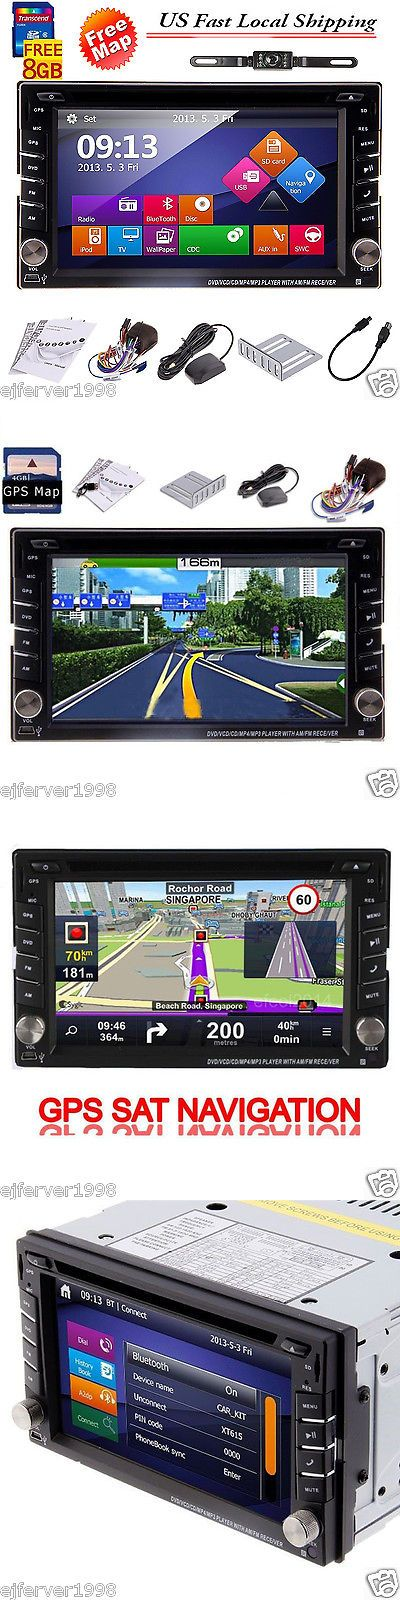 Vehicle Electronics And GPS: 6.2Gps Navigation Map Double 2 Din Car Stereo Dvd Player Bluetooth Ipod Mp3 Tv BUY IT NOW ONLY: $124.99